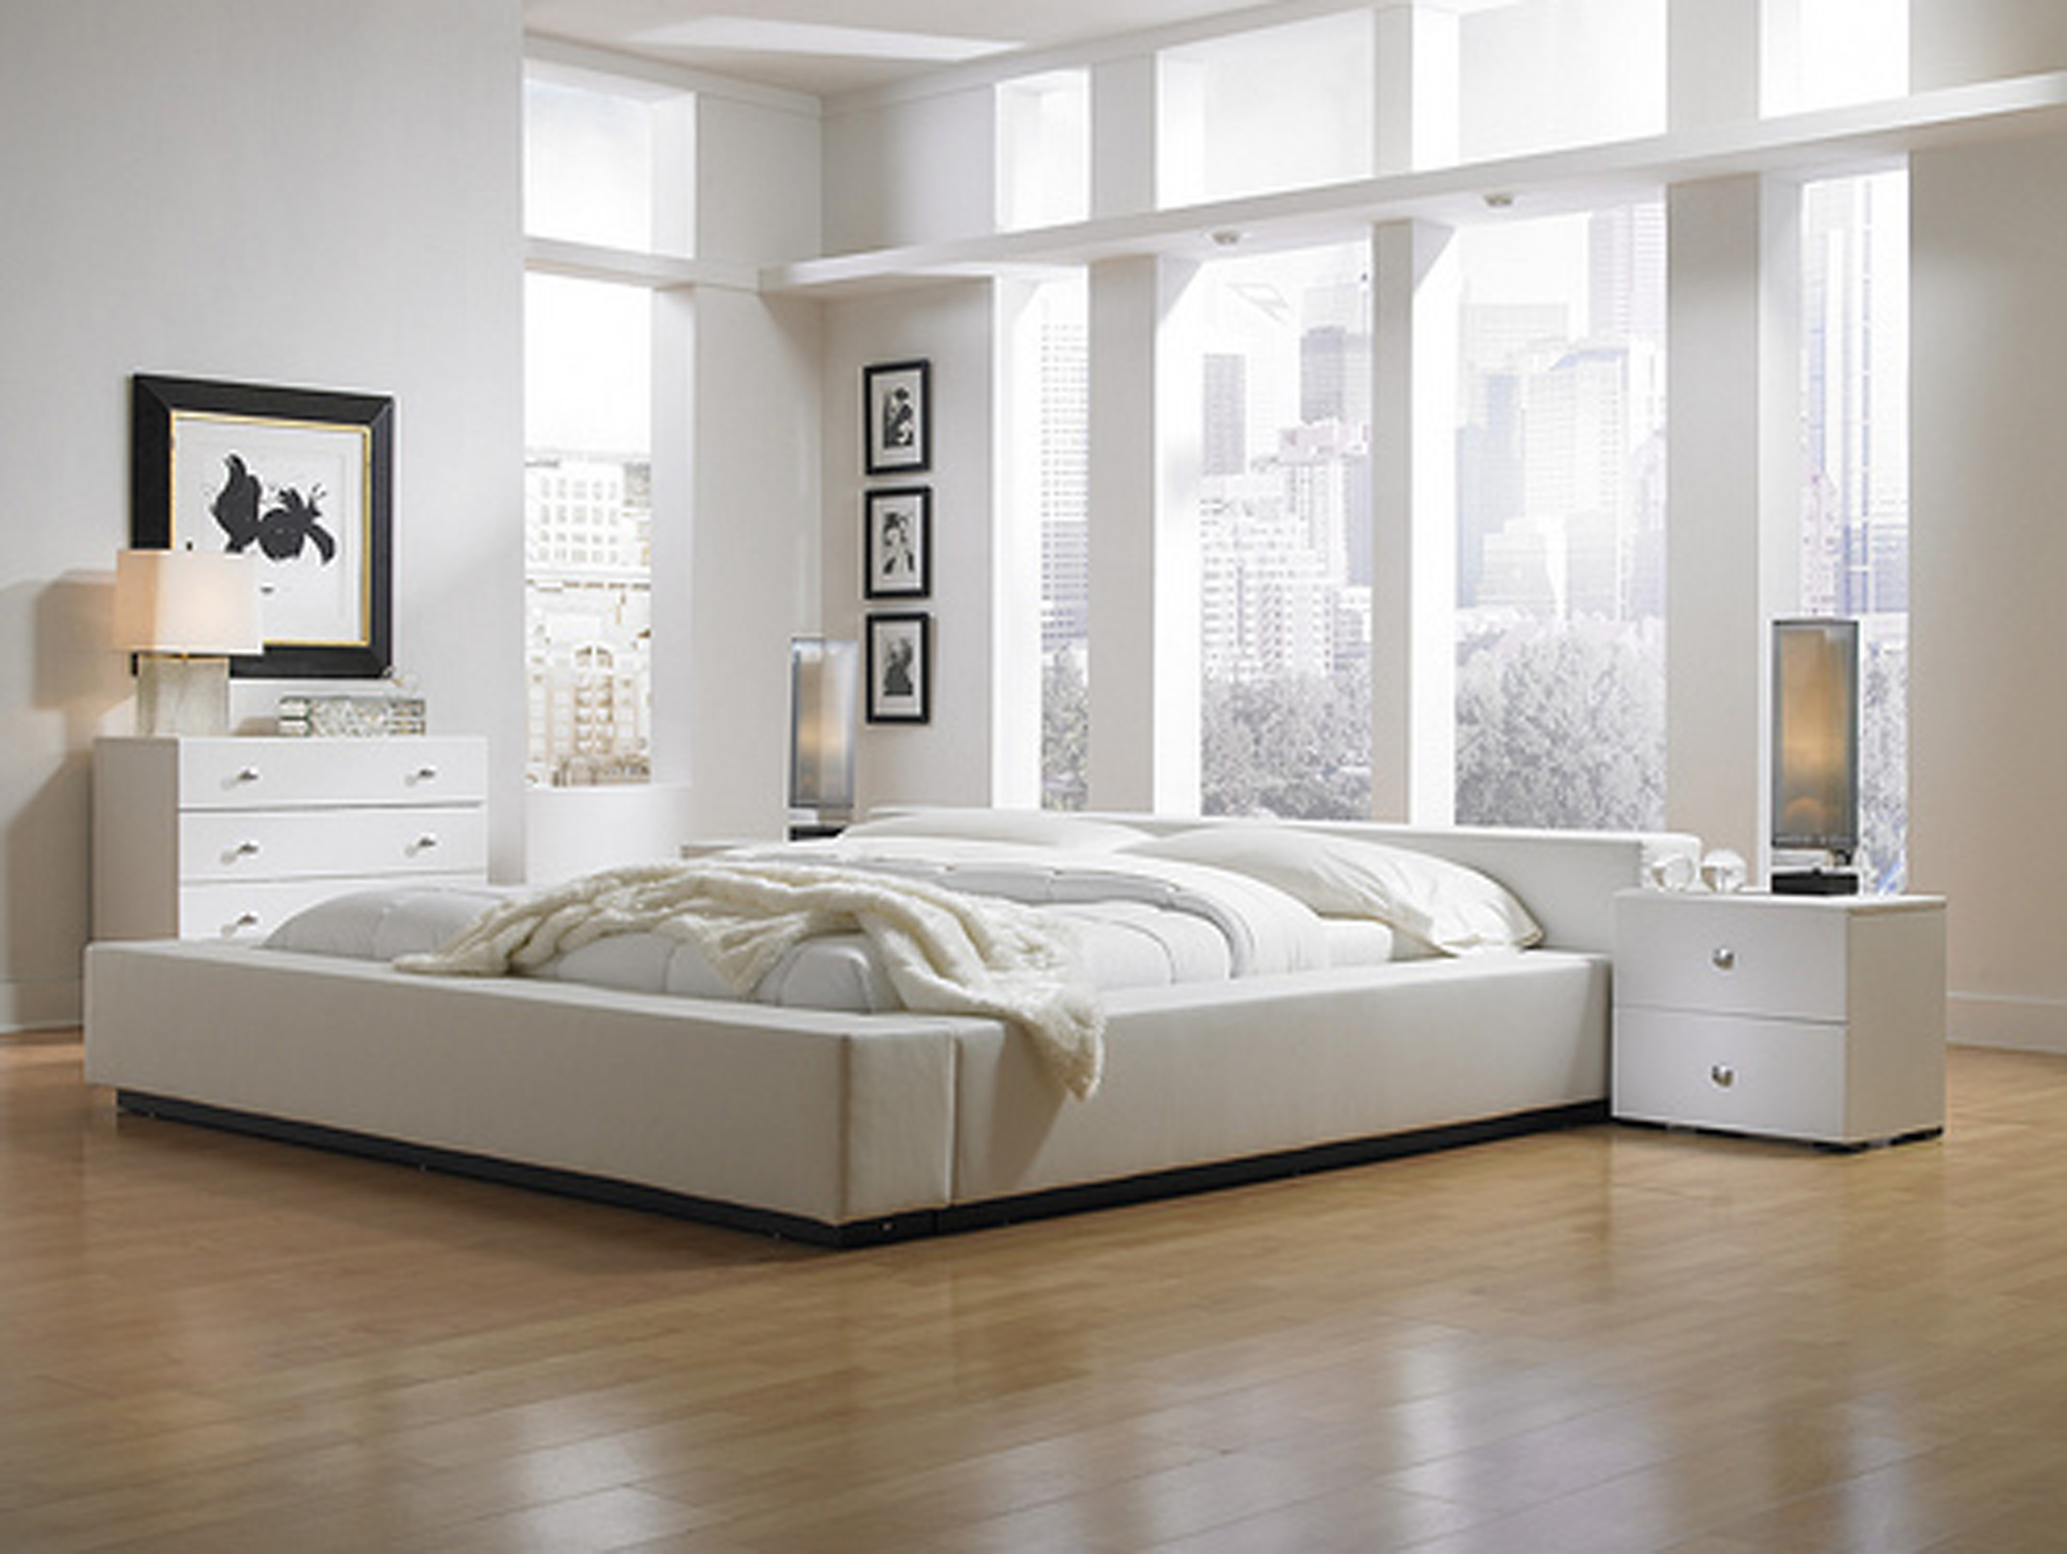 decorating a room with white furniture photo - 6